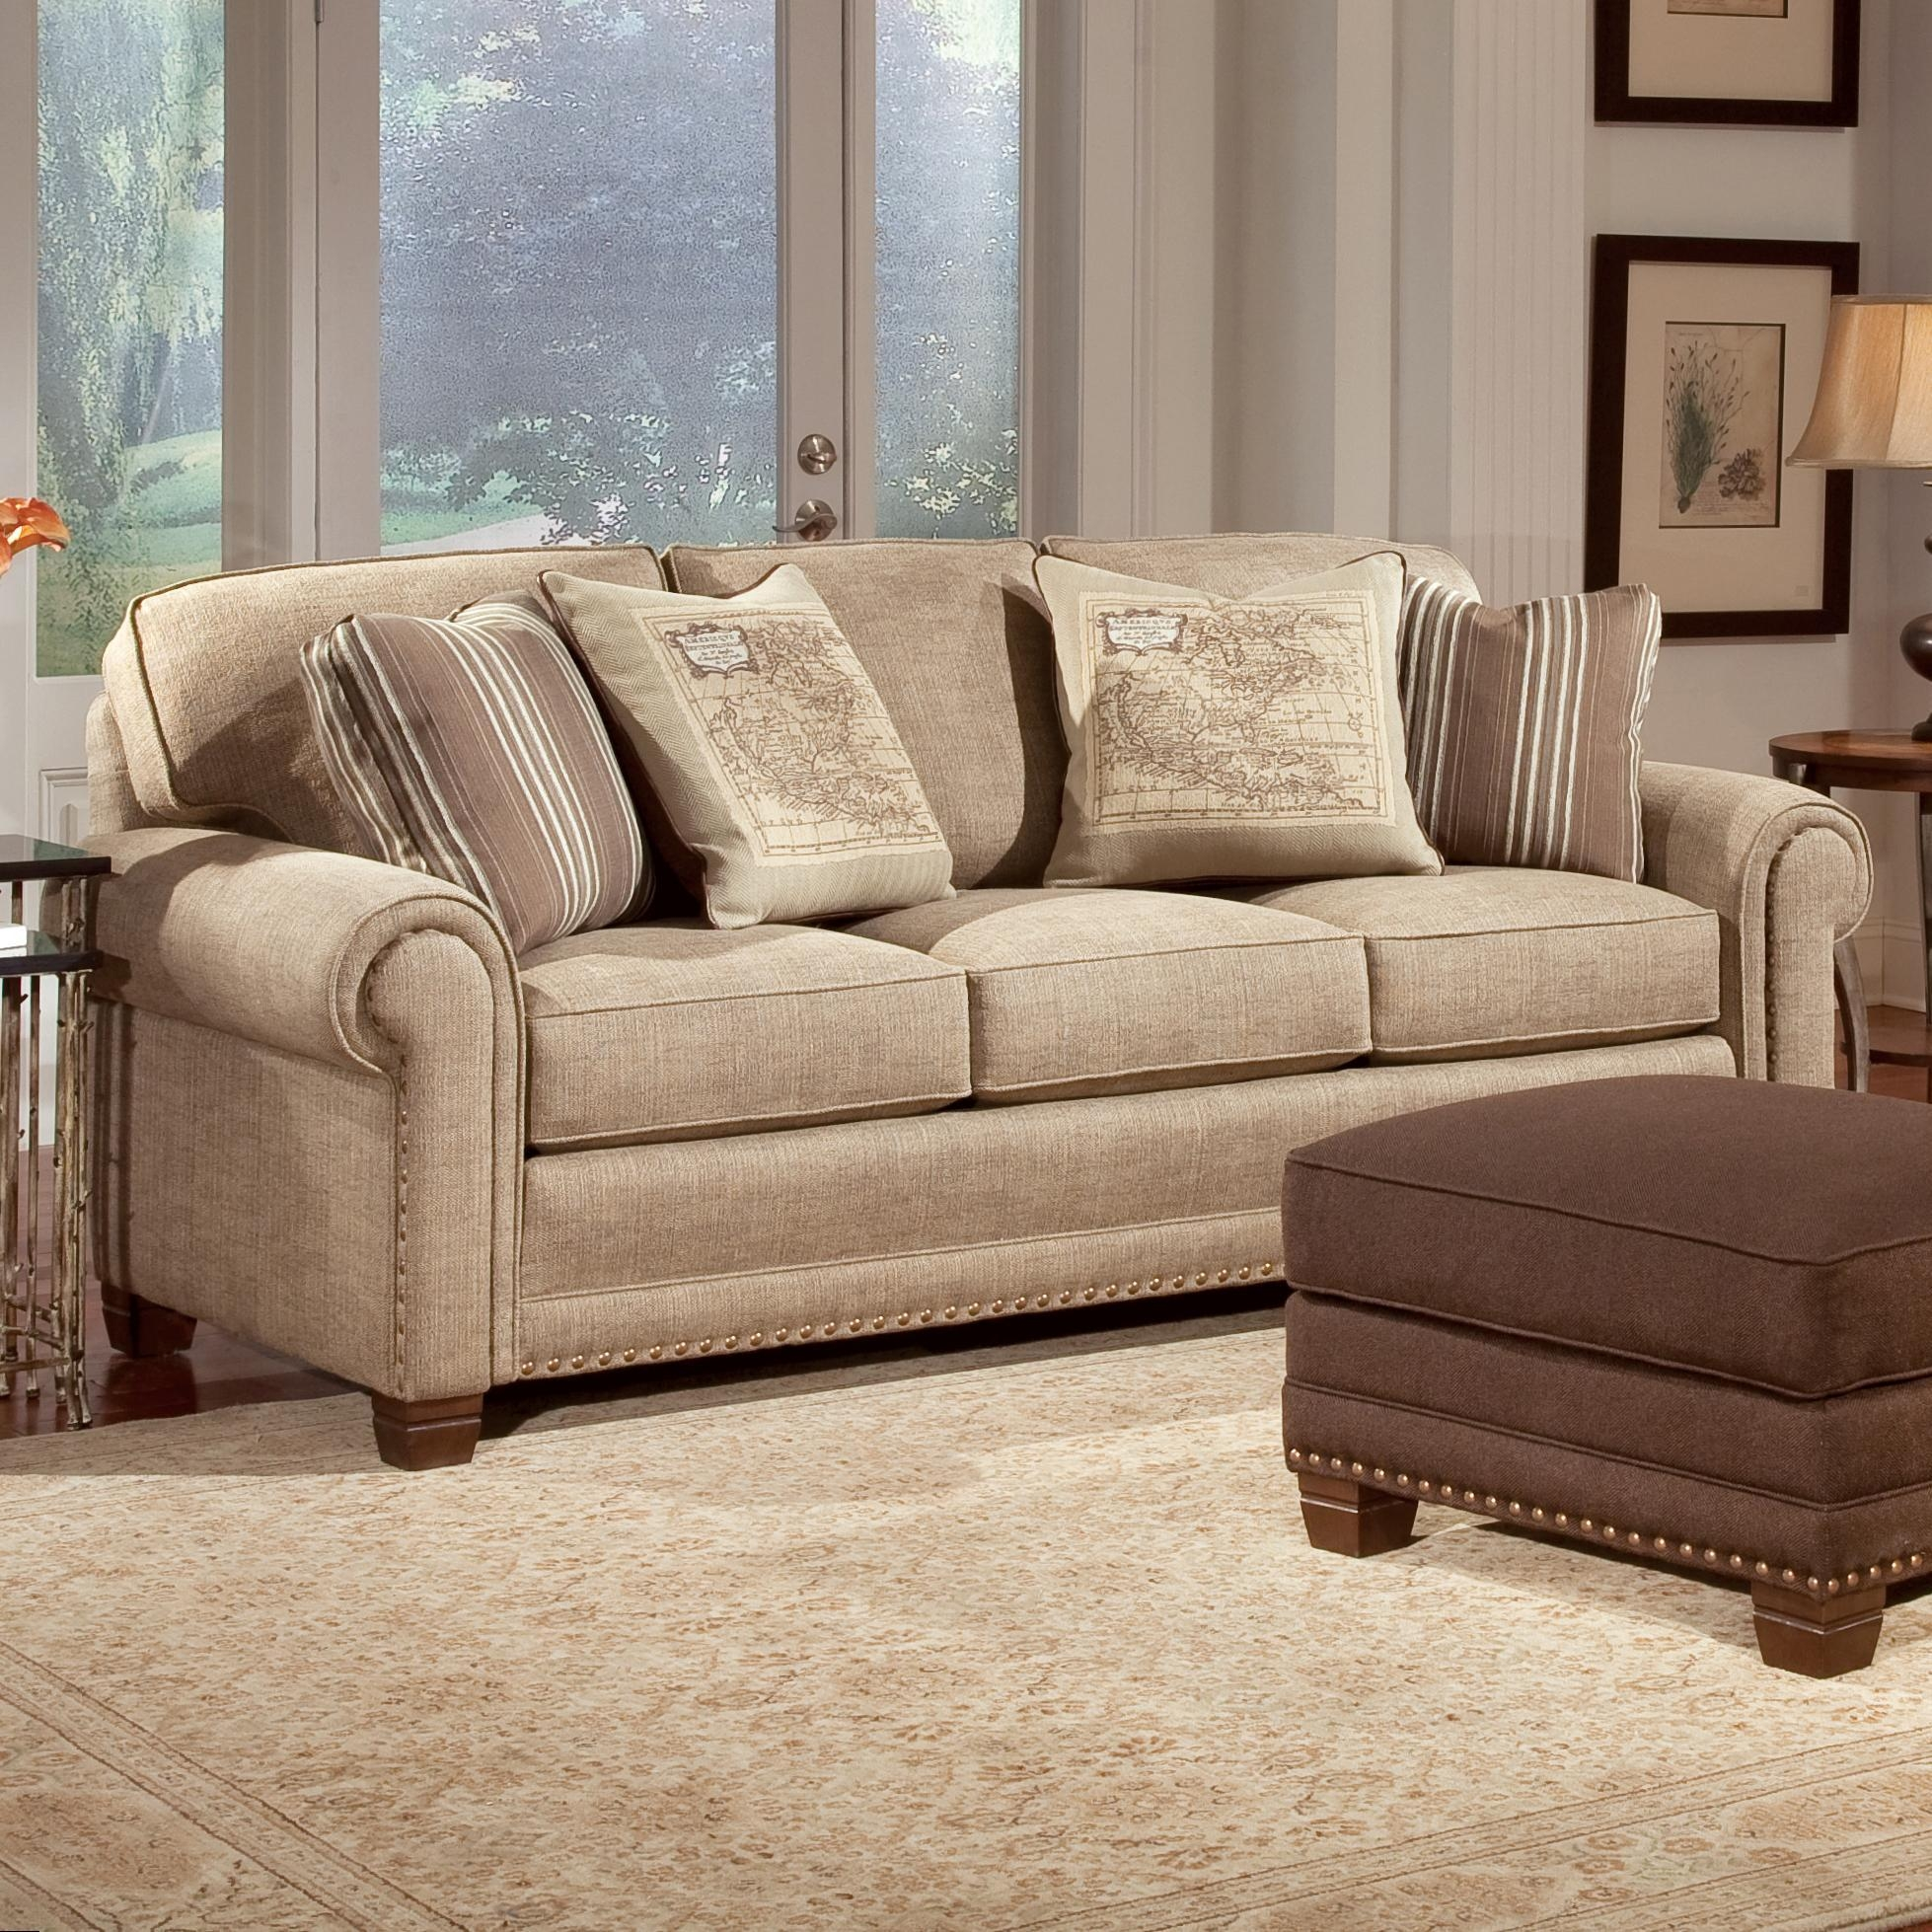 Sofa Maryland Home Design Furniture Decorating Amazing Simple With Within Sofa Maryland (Image 11 of 20)